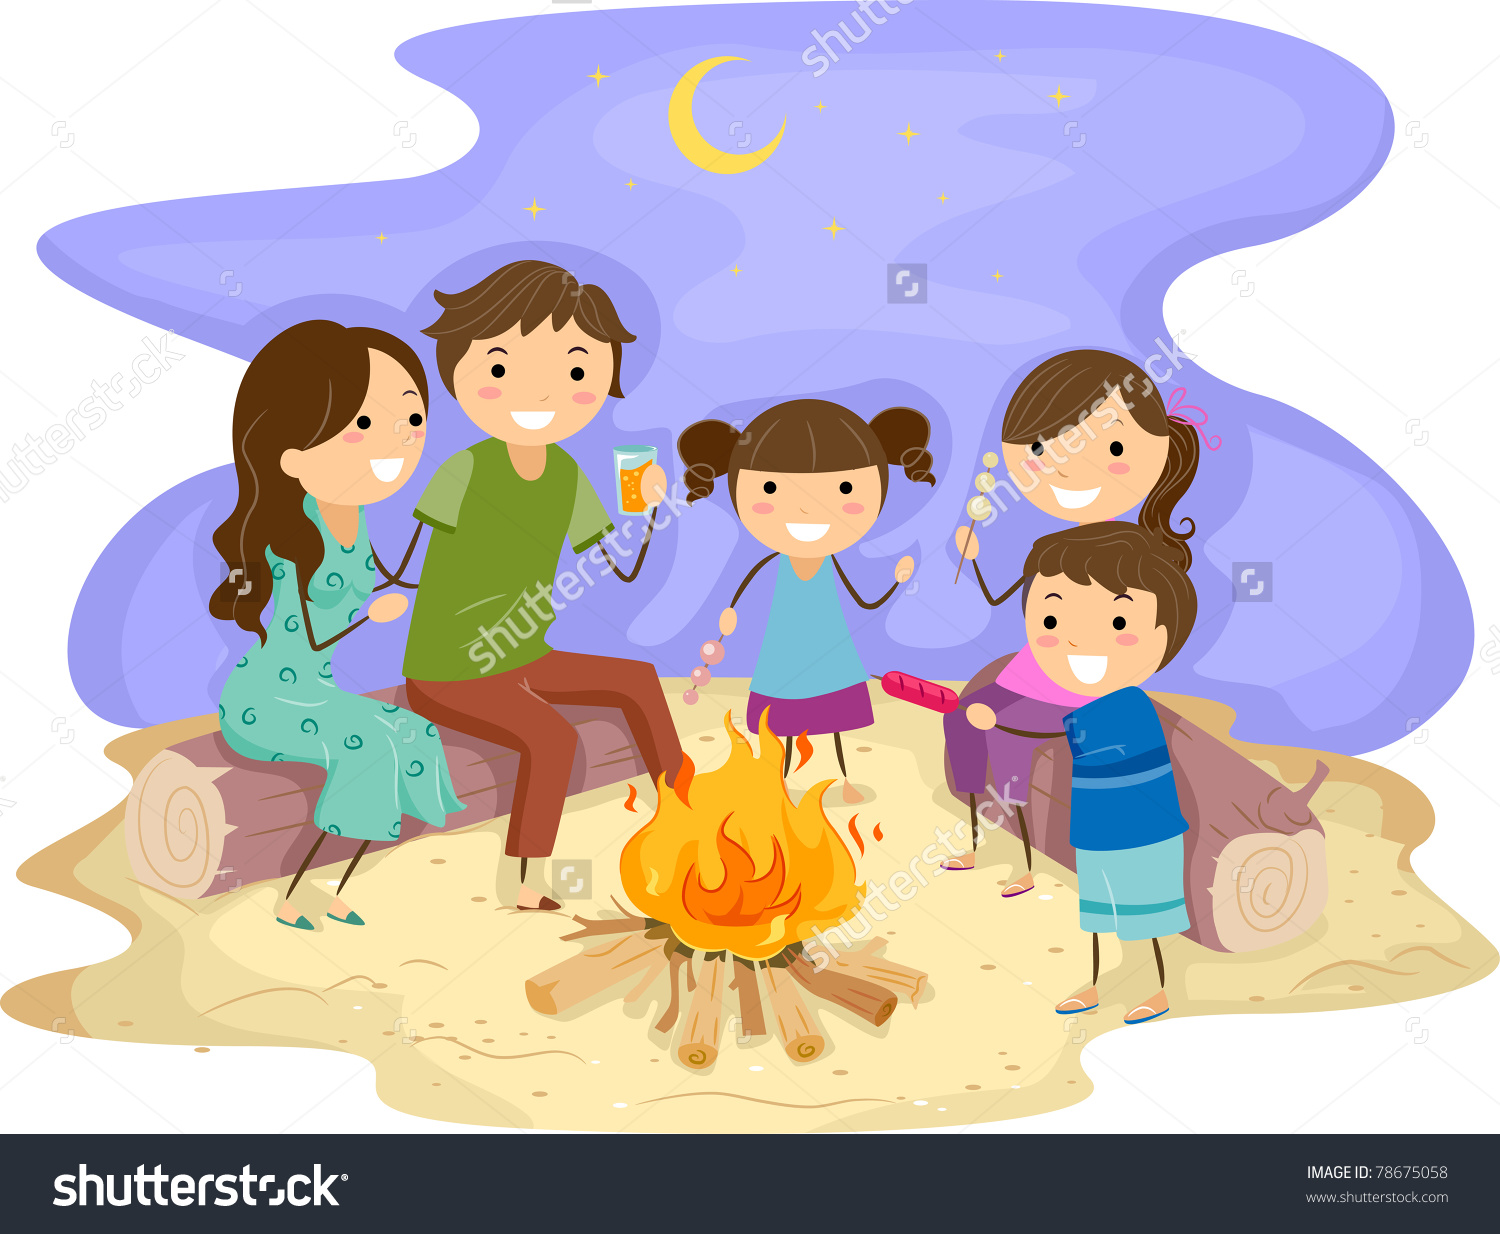 Bonfire with kids clipart clipart Illustration Family Gathered Around Bonfire Stock Vector 78675058 ... clipart